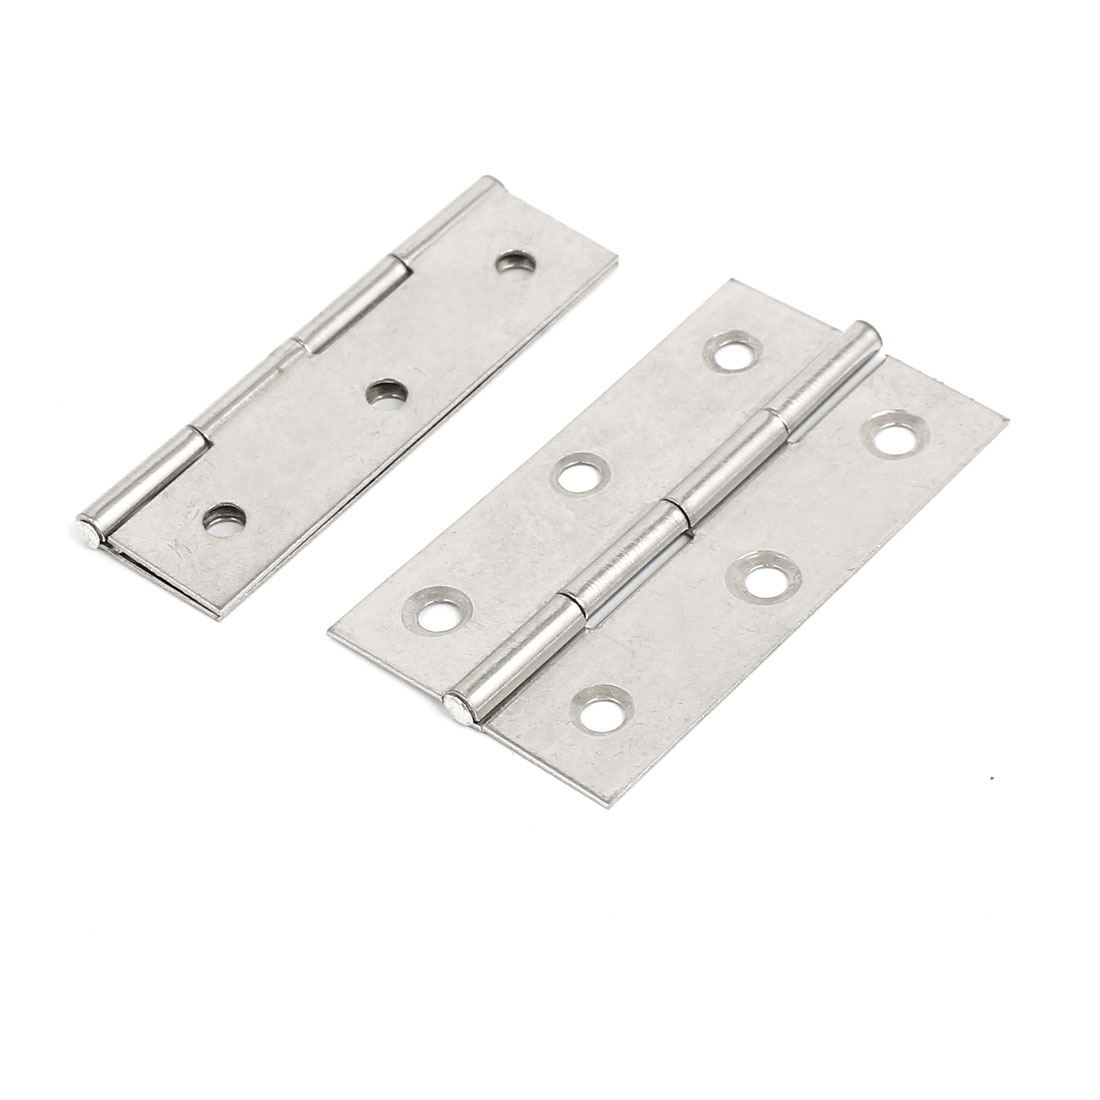 Cabinet Drawer Door Steel Butt Hinges Silver Tone 66mm Length 2pcs